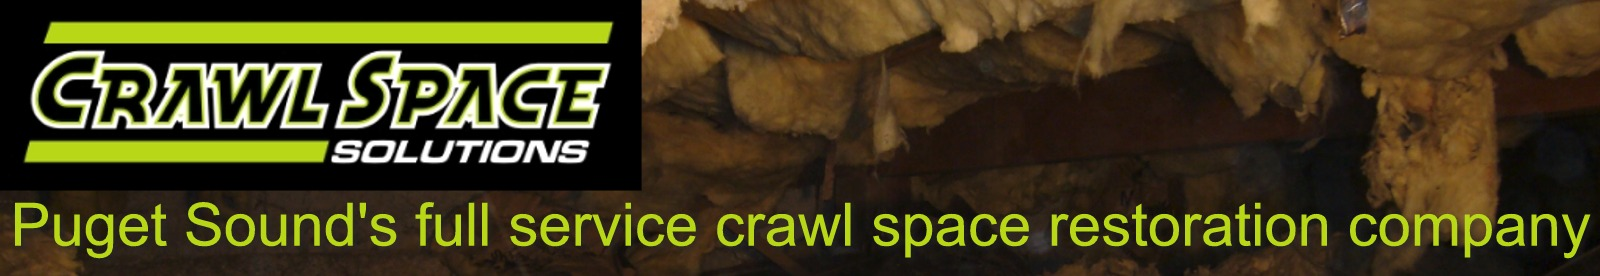 Crawlspace Solutions